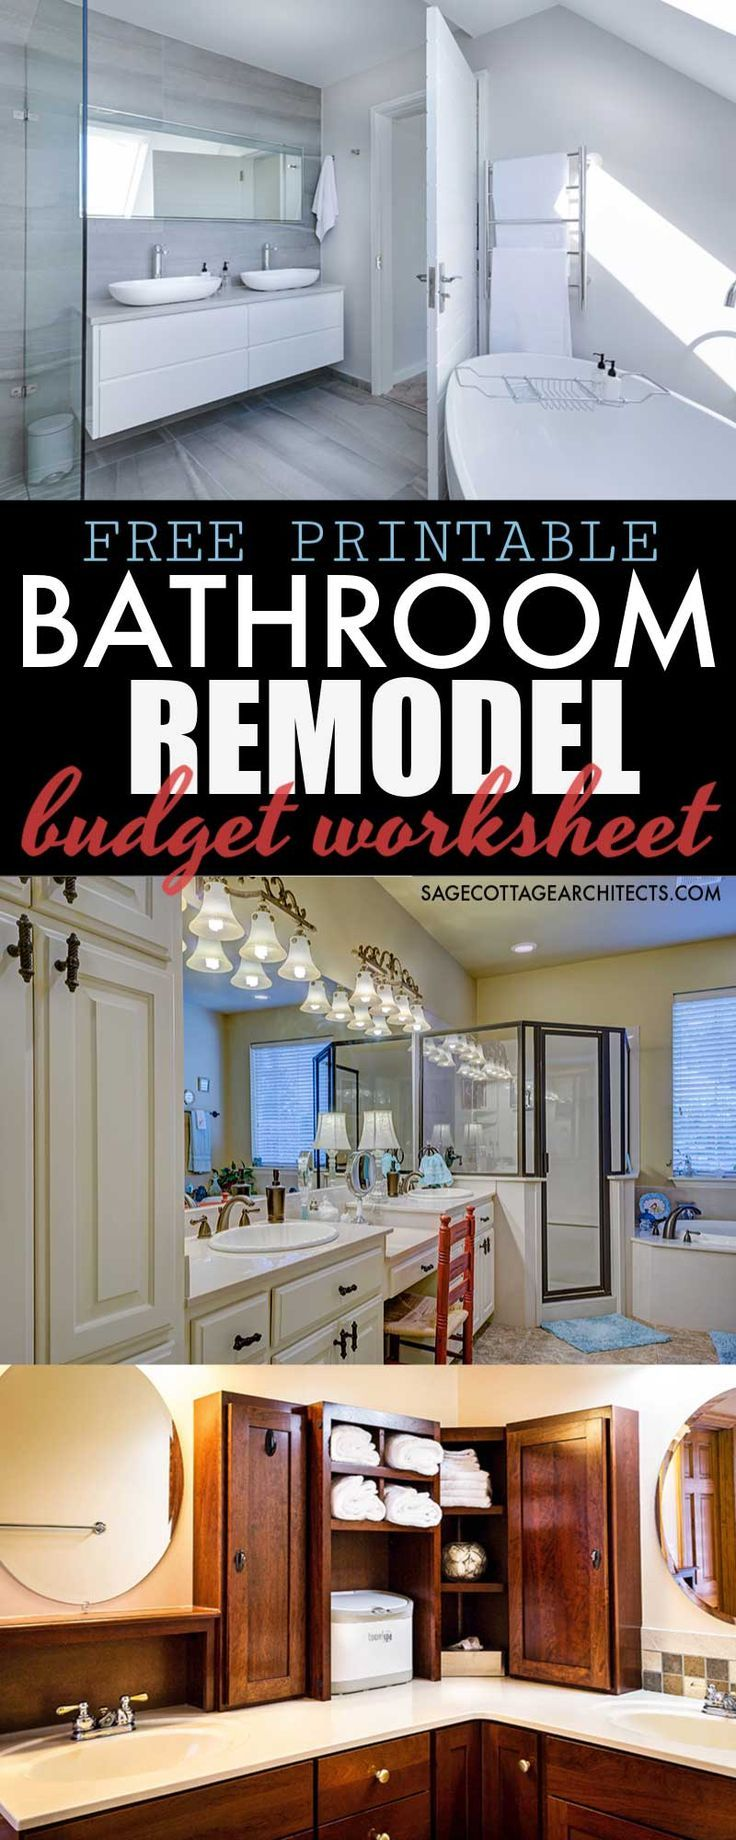 Average Cost Of A Bathroom Remodel Free Budgeting Printable Sage Cottage Architects Budget Bathroom Remodel Bathrooms Remodel Bathroom Remodel Plans